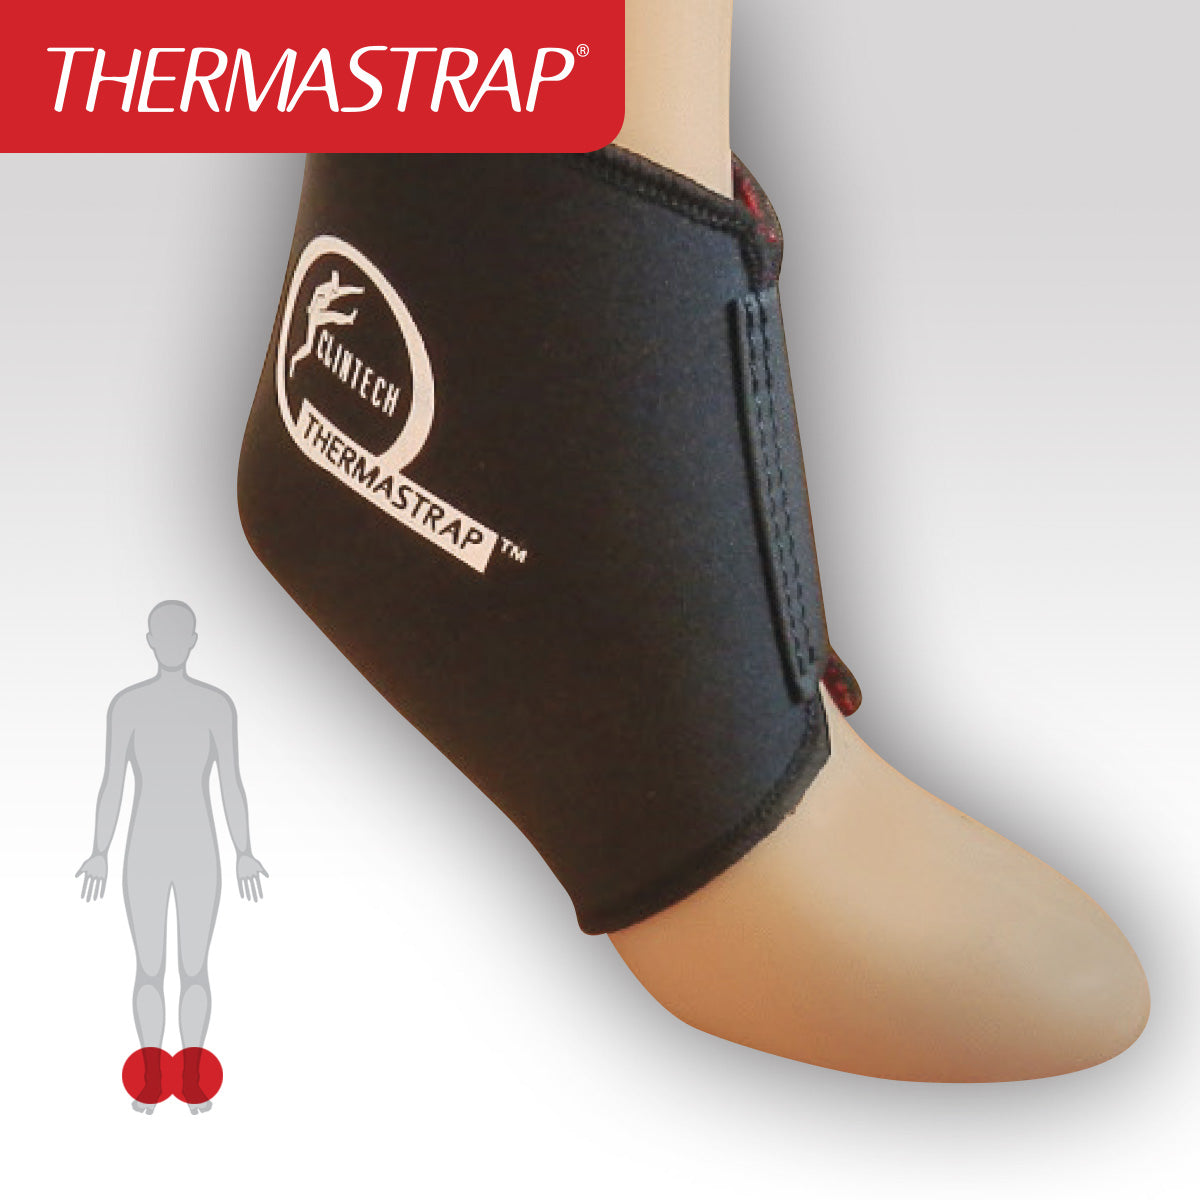 Thermastrap Ankle/Foot Support